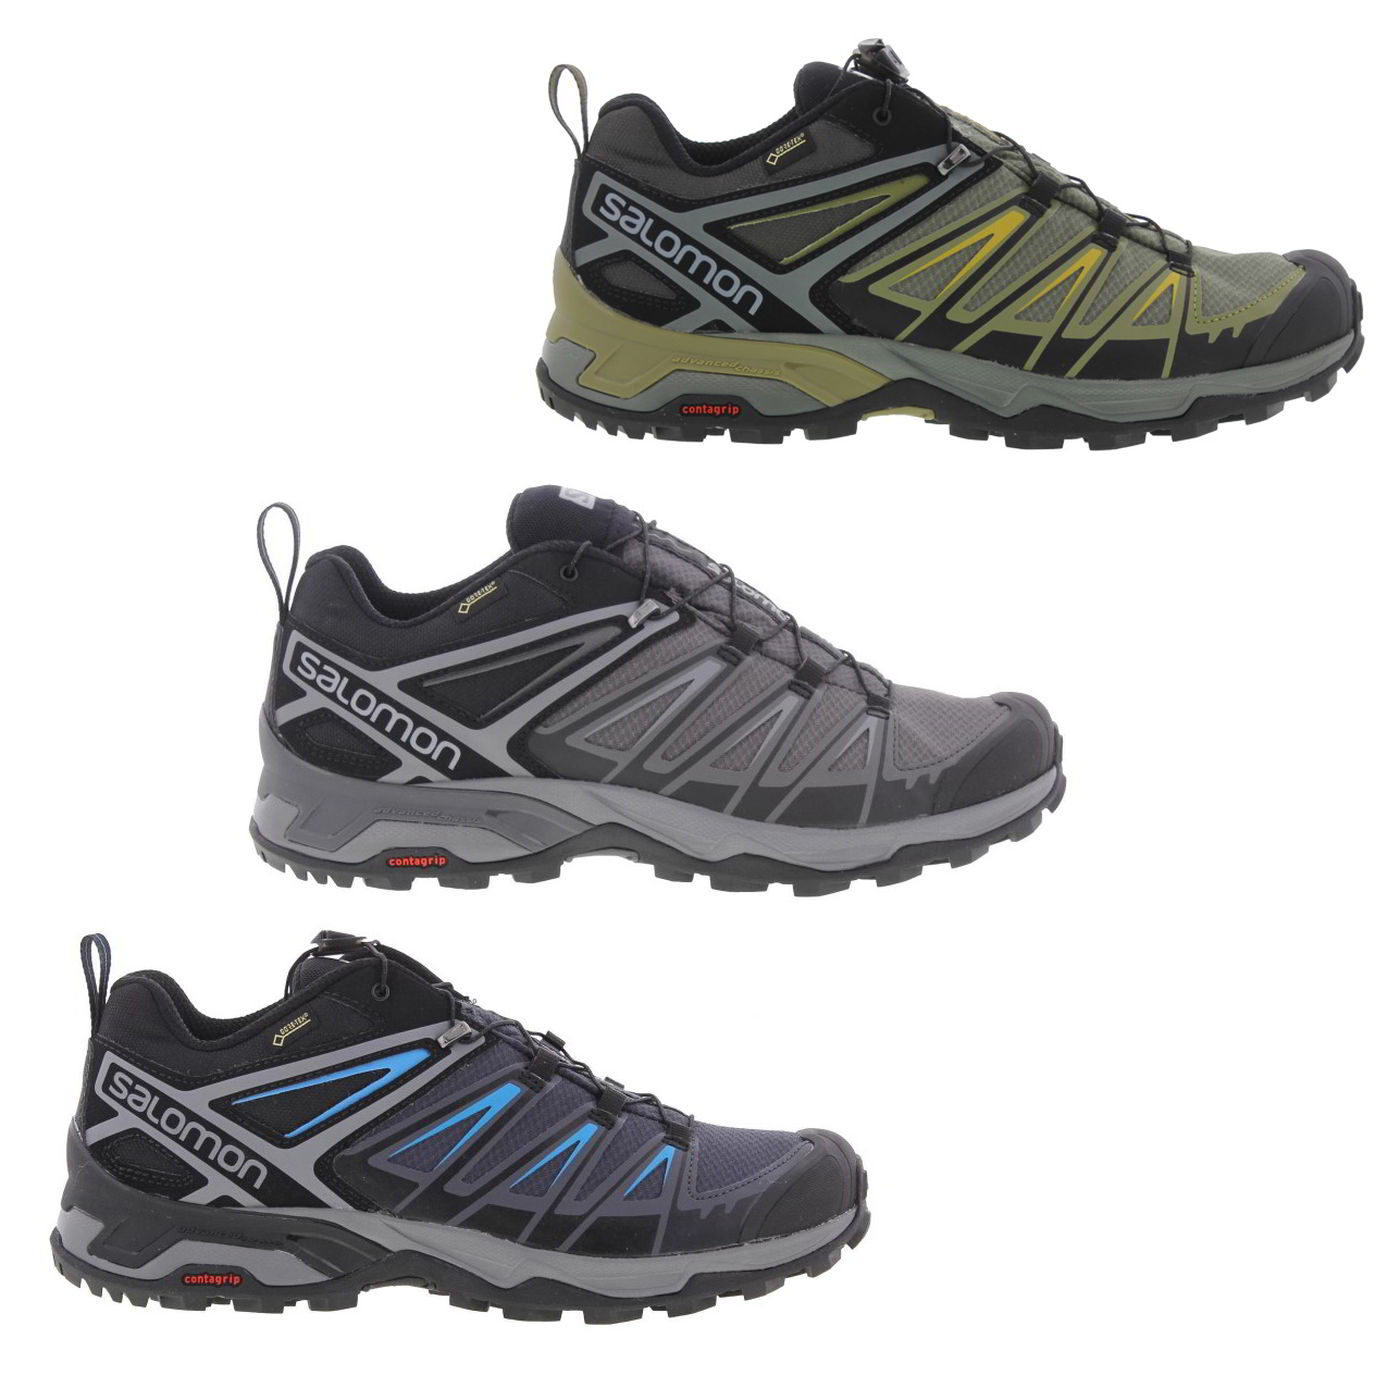 7b26285efce Salomon X Ultra 3 Gtx Mens Waterproof Walking Hiking Trainers Shoes ...